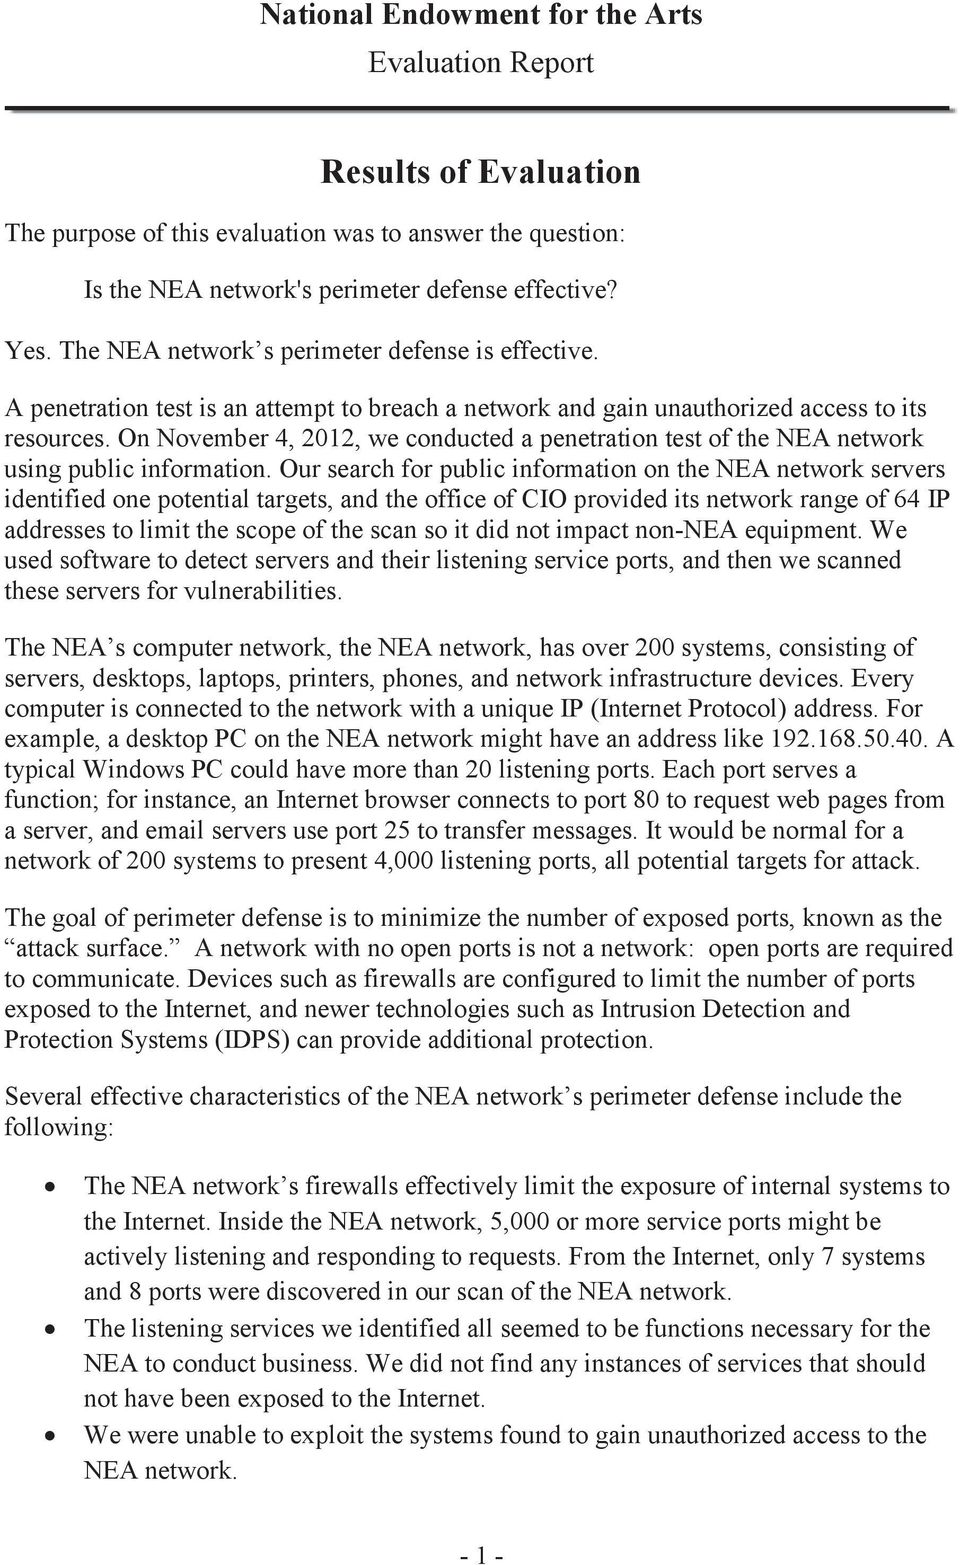 Our search for public information on the NEA network servers identified one potential targets, and the office of CIO provided its network range of 64 IP addresses to limit the scope of the scan so it